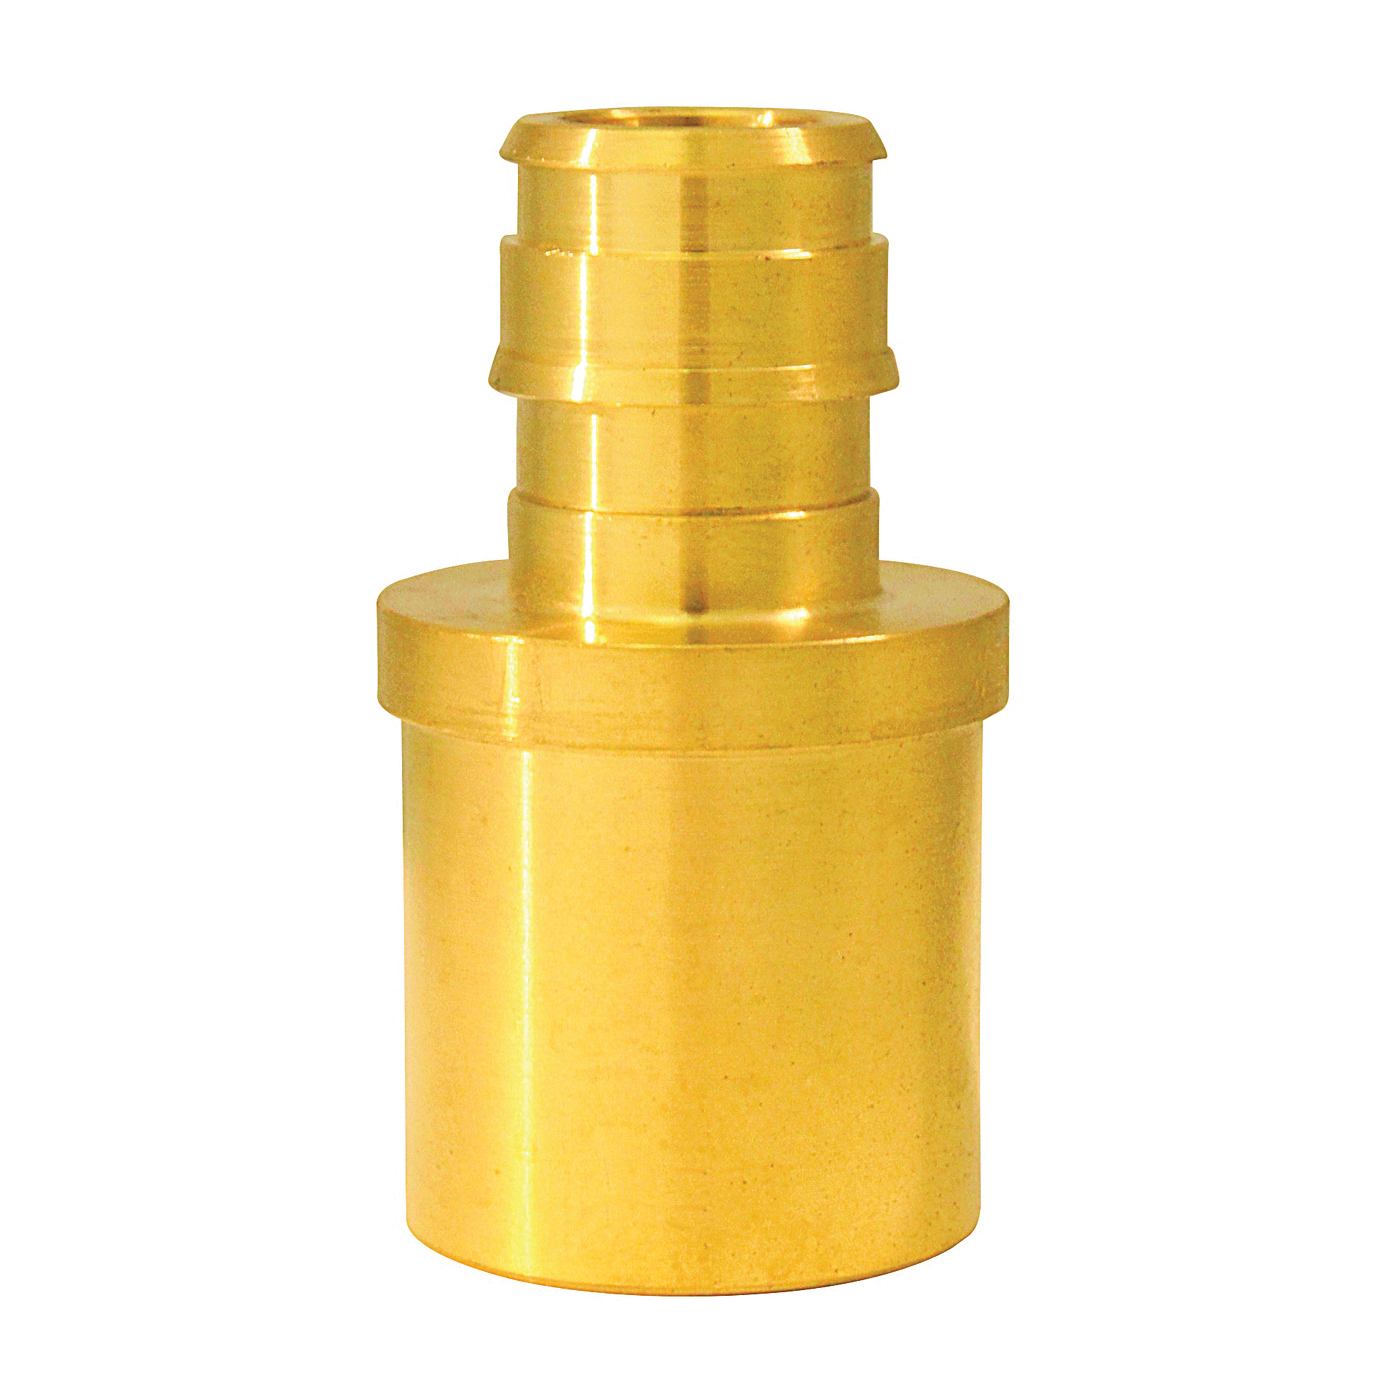 Picture of Apollo ExpansionPEX EPXMS1234 Reducing Solder Adapter, 1/2 x 3/4 in, Barb x Male Sweat, Brass, 200 psi Pressure